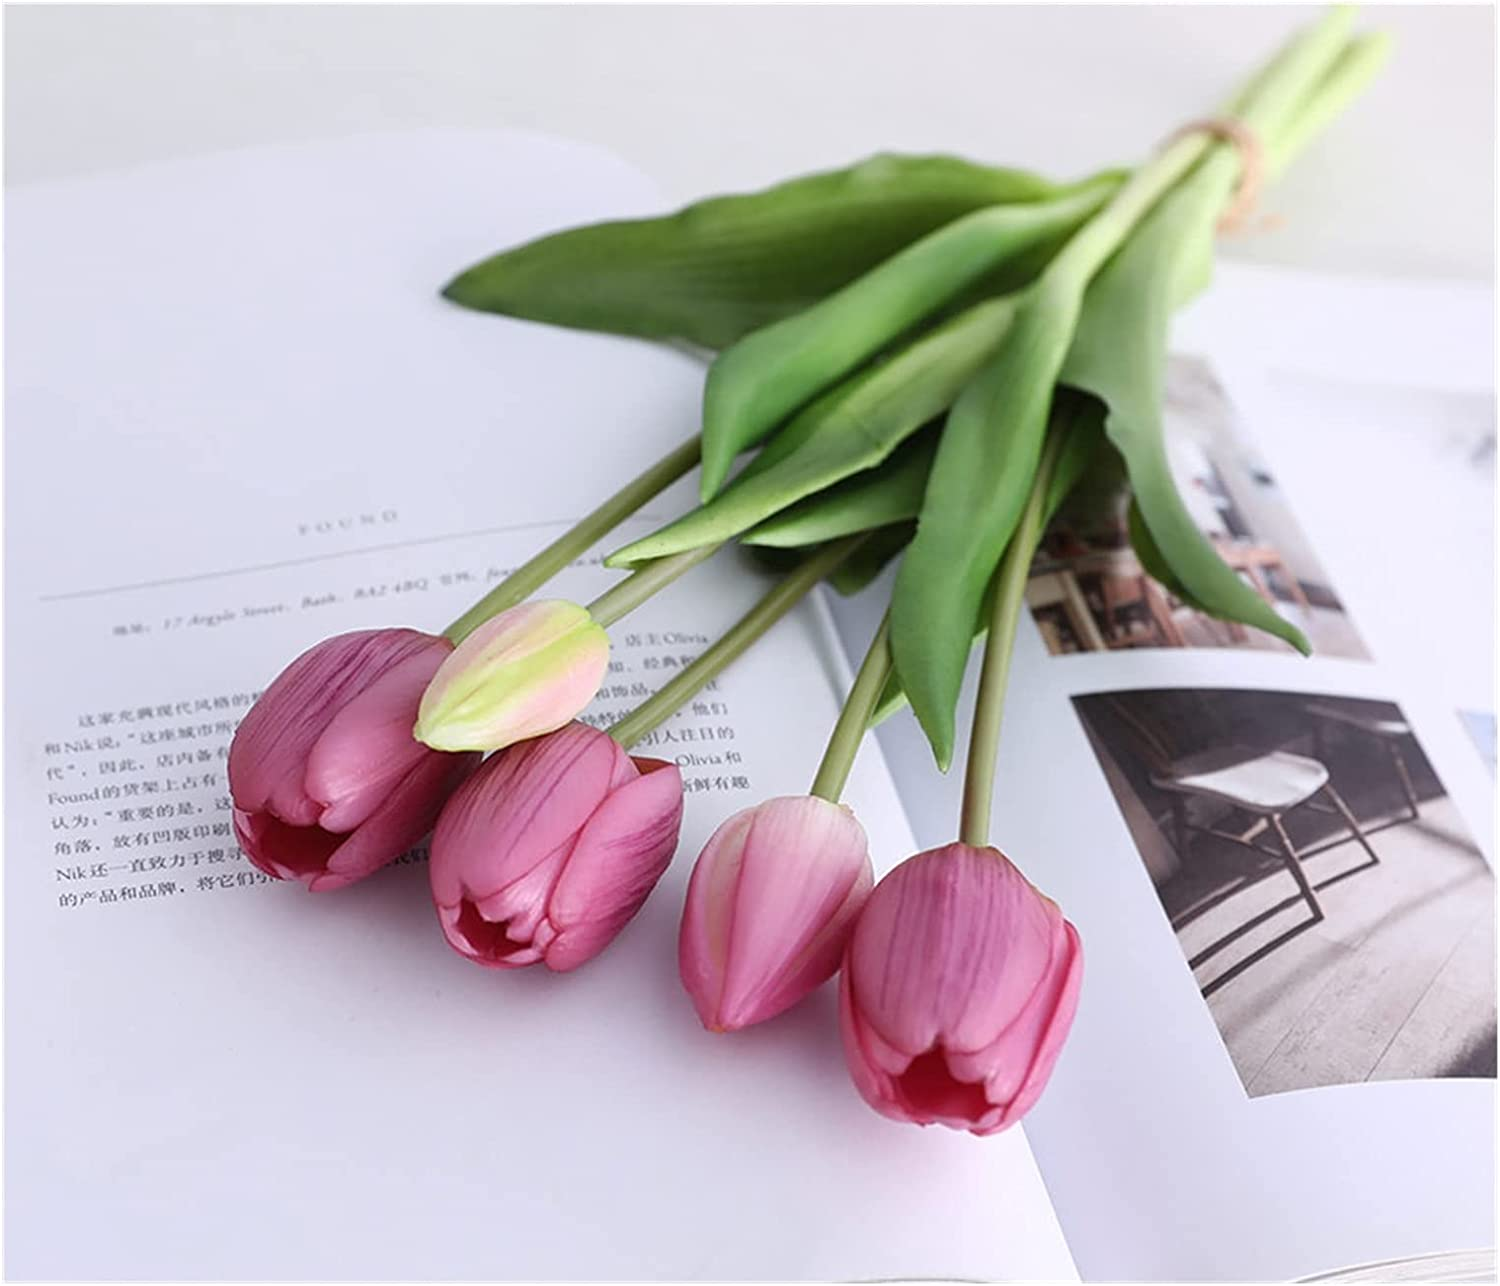 NEW before selling JSJJAES Artificial Flowers Real Touch Max 61% OFF Luxury Silicone Bouq Tulip